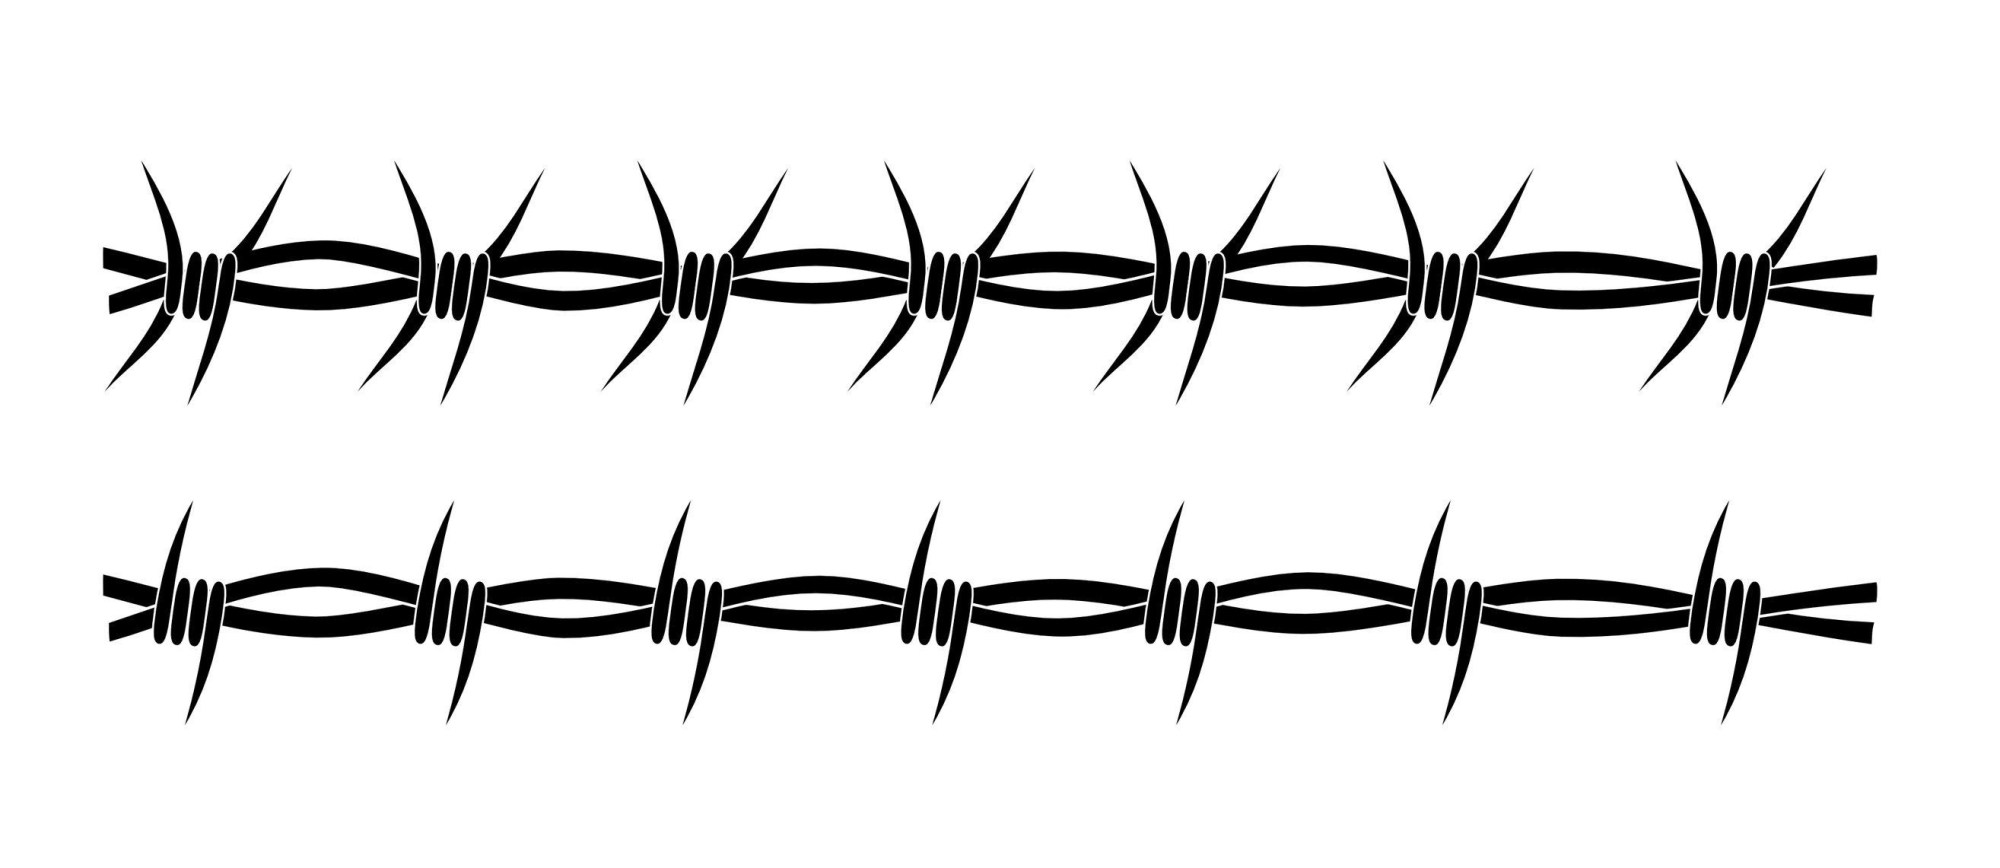 hight resolution of wild west clipart barbed wire barb fence clip art vector transparent